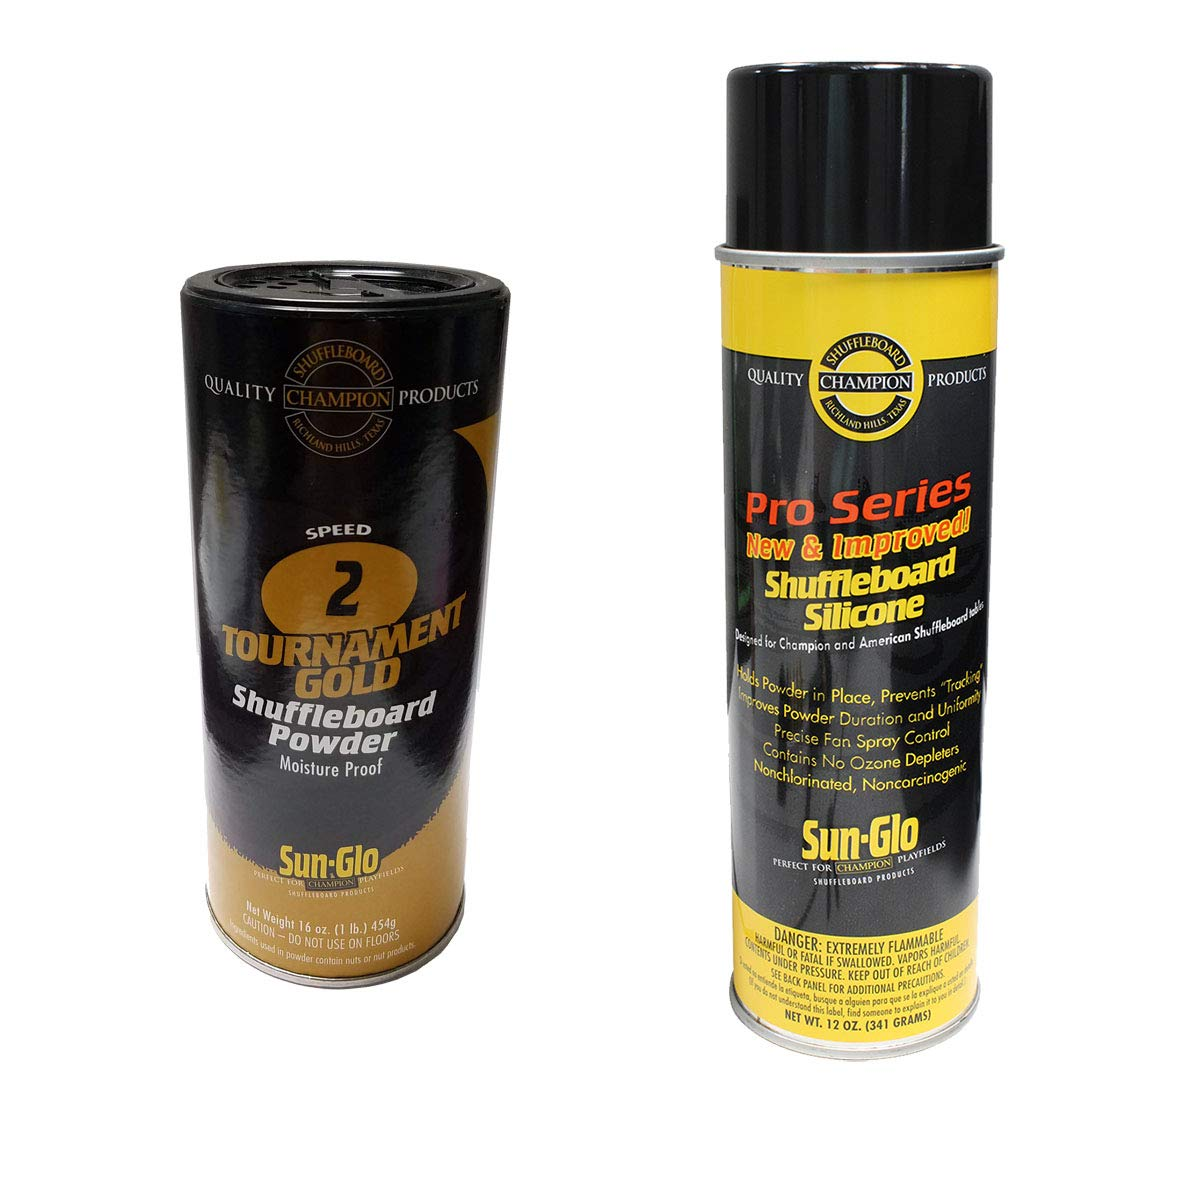 Sun-Glo Silicone Shuffleboard Spray (12 oz.) & Shuffleboard Powder - Speed 2 - Tournament Gold (16 oz.) Combo by Sun-Glo